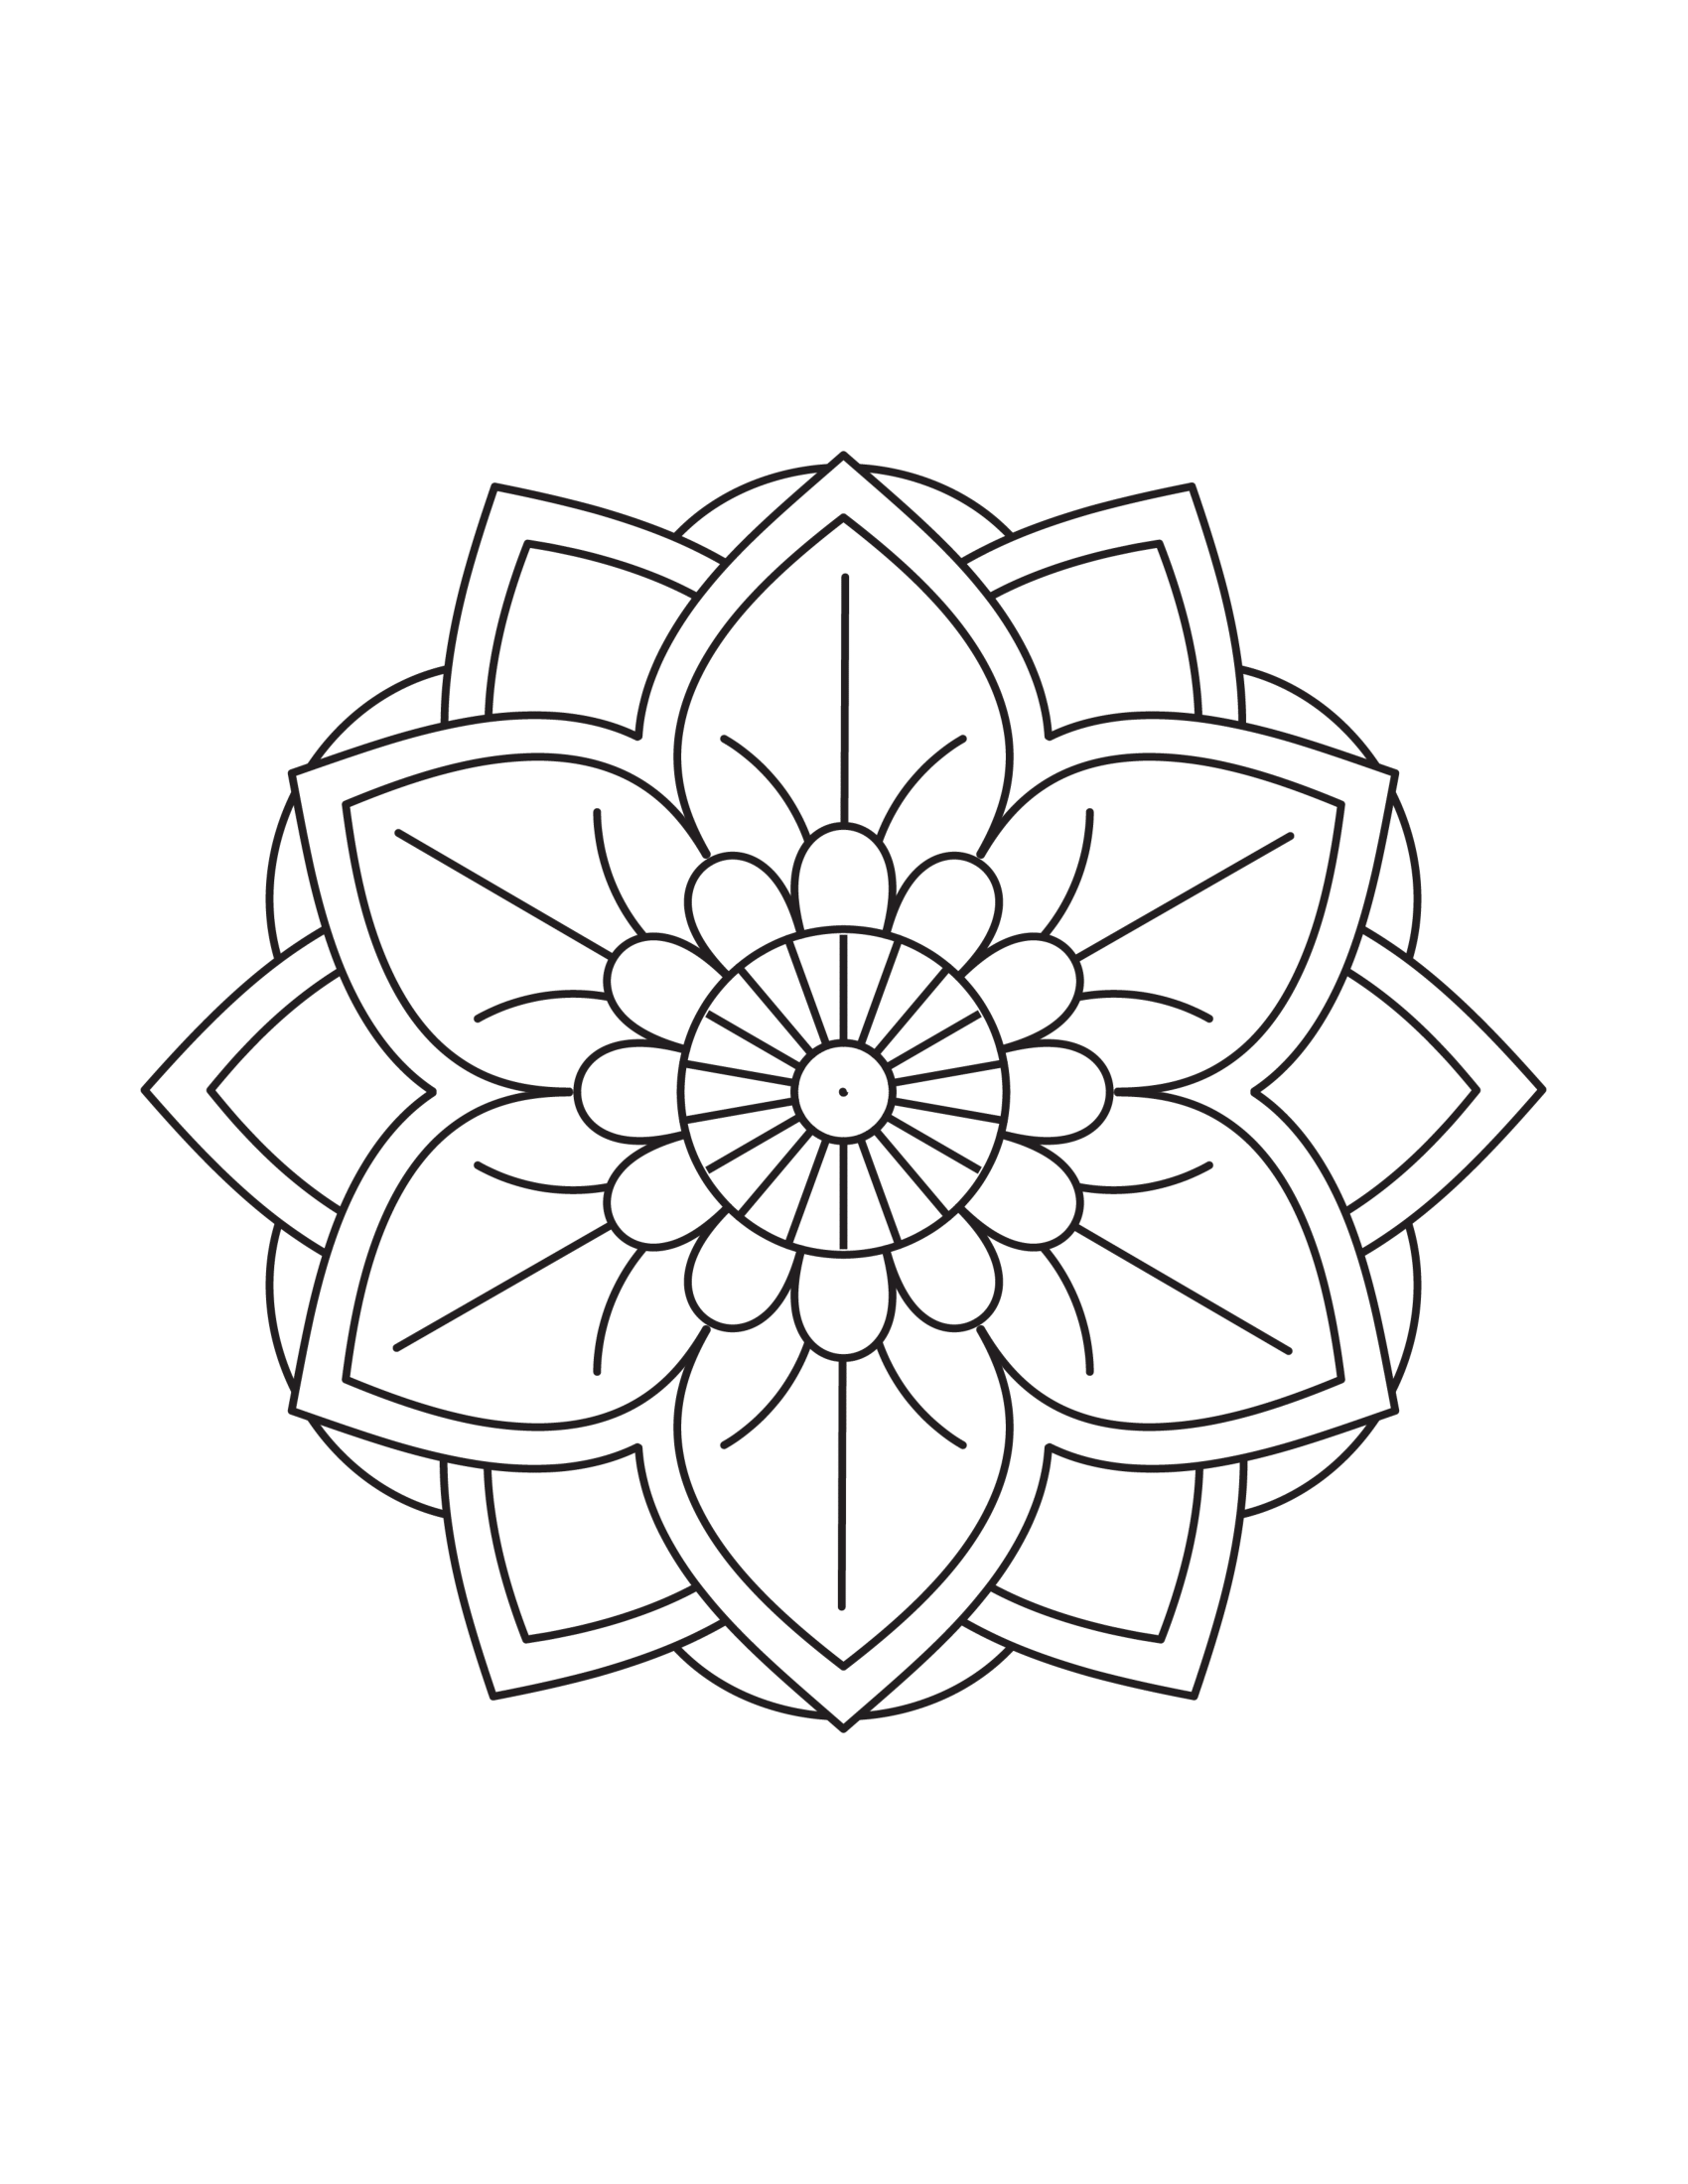 Simple Flower Mandala Coloring Pages Free Printables Mandala Coloring Printable Flower Coloring Pages Mandala Coloring Pages